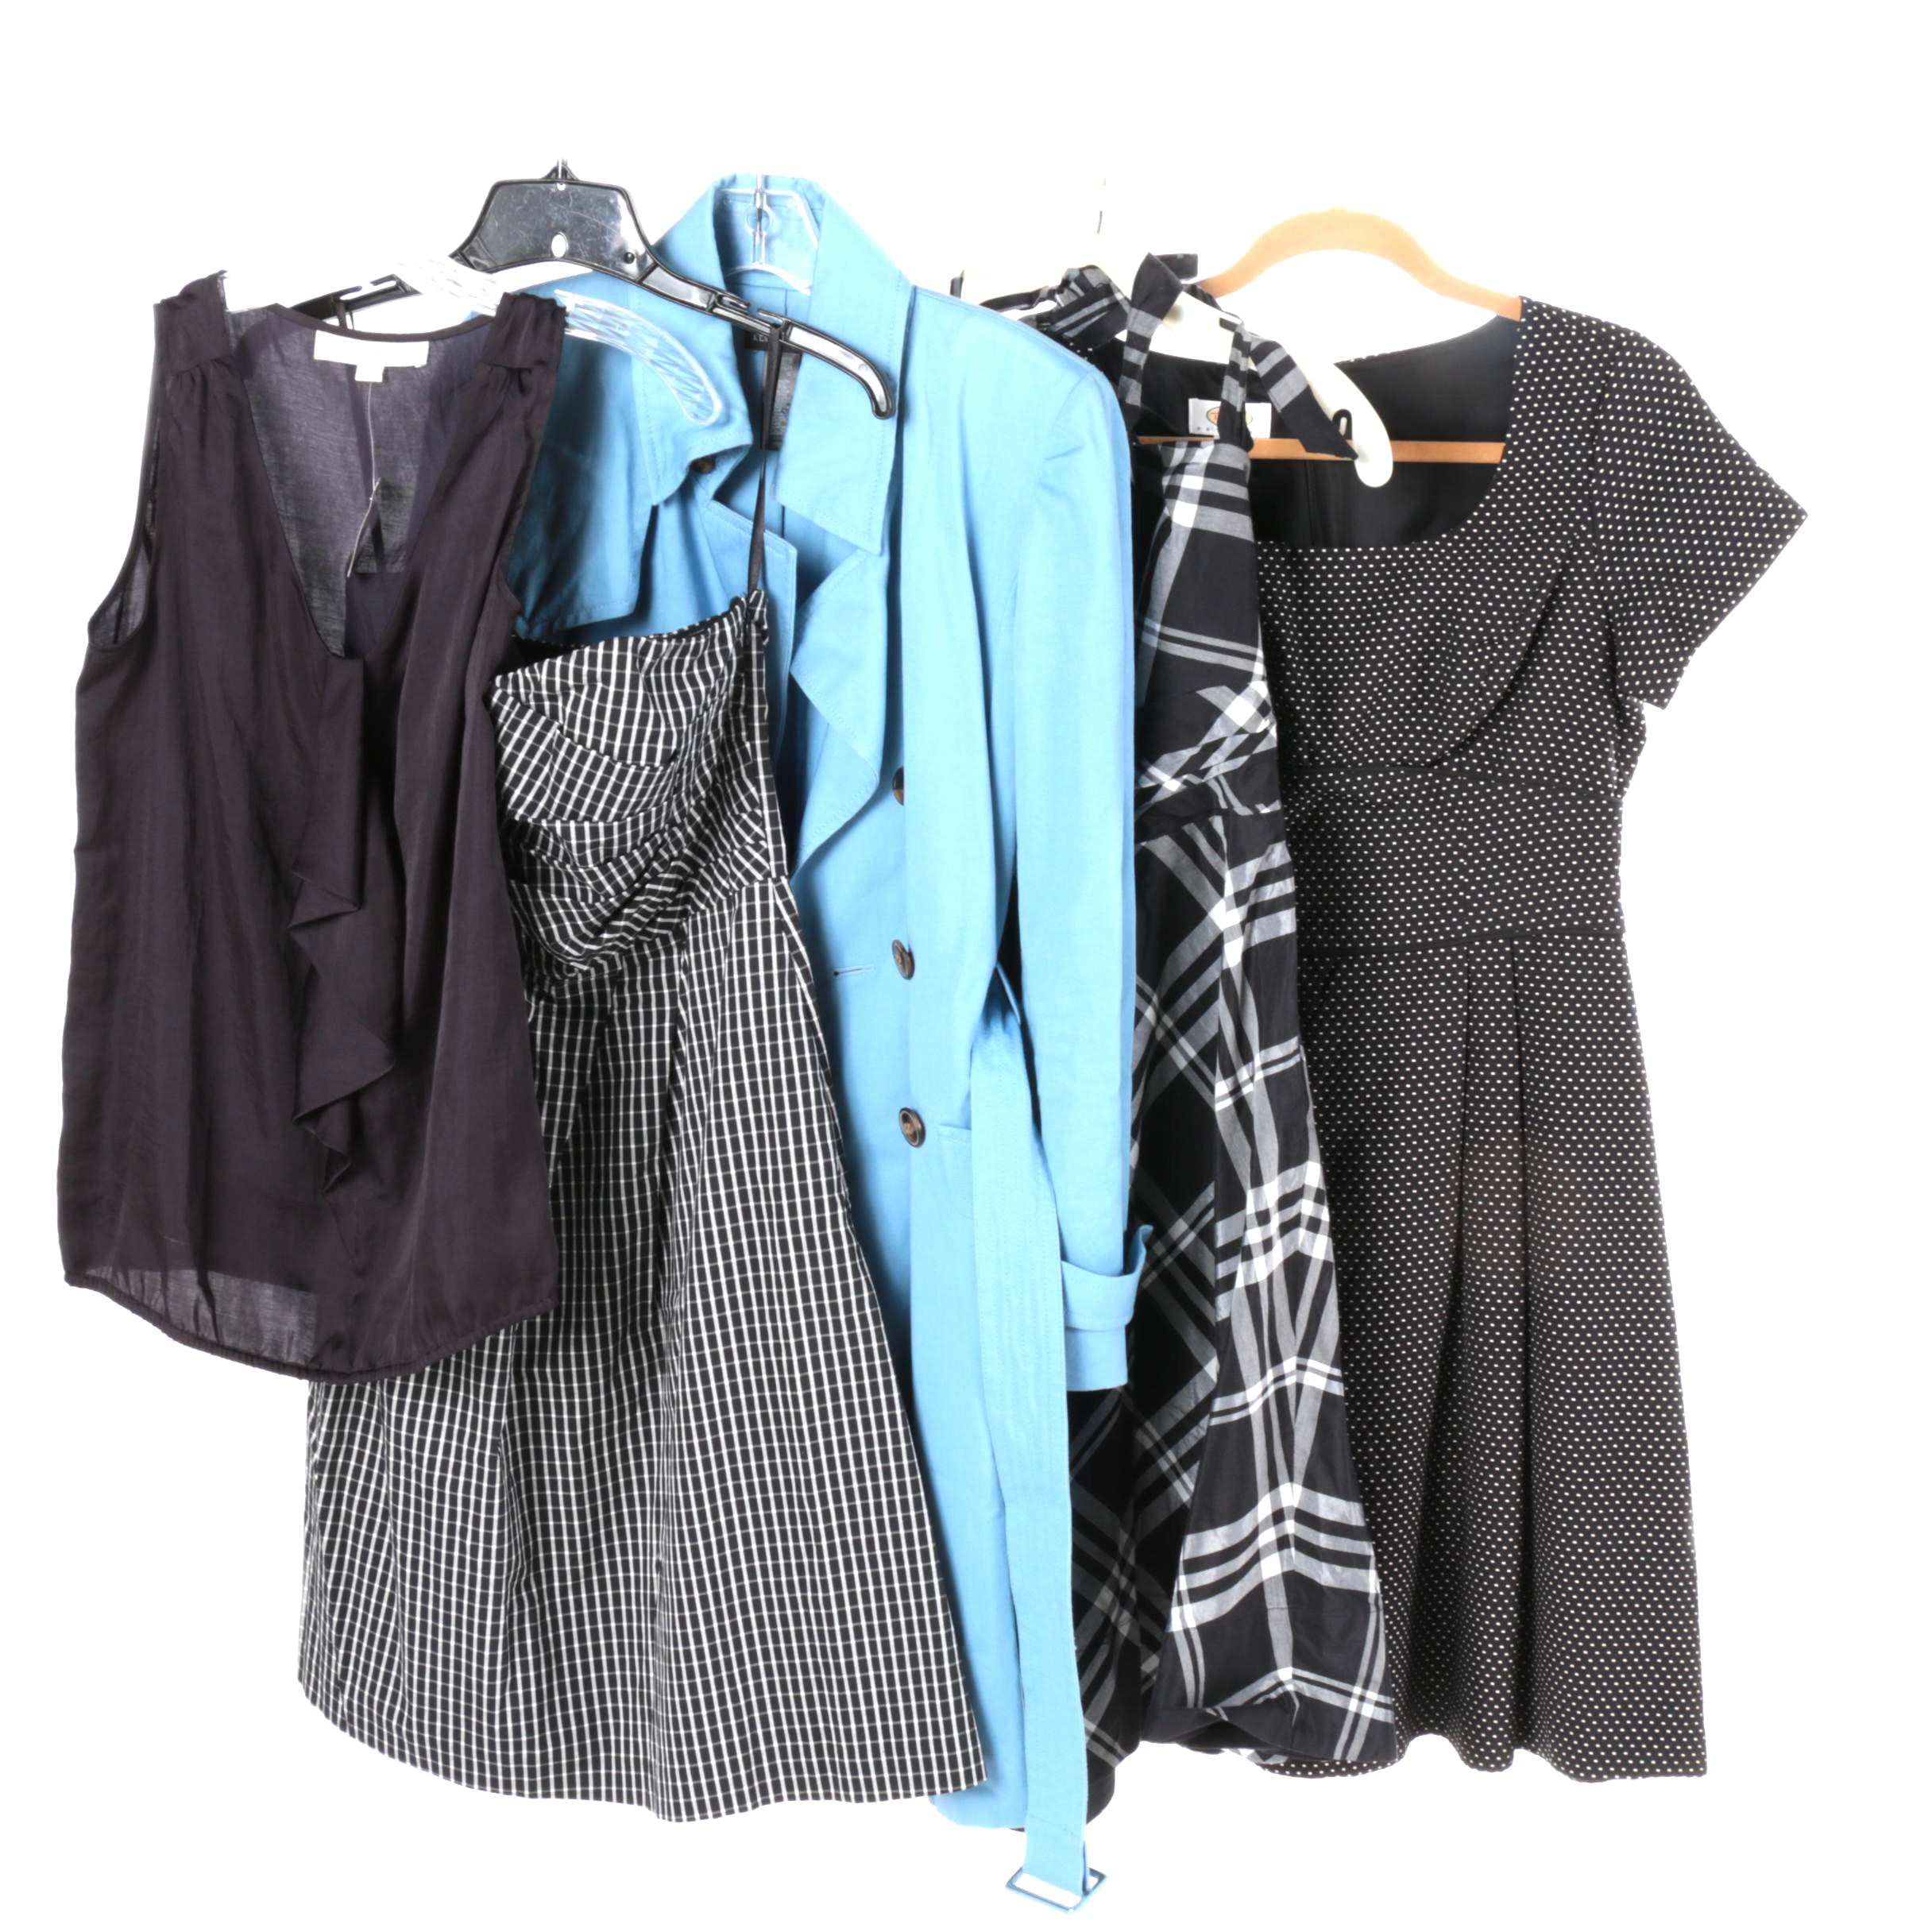 Women's Dresses, Coat and Blouse Including Ann Taylor Loft and Kenneth Cole